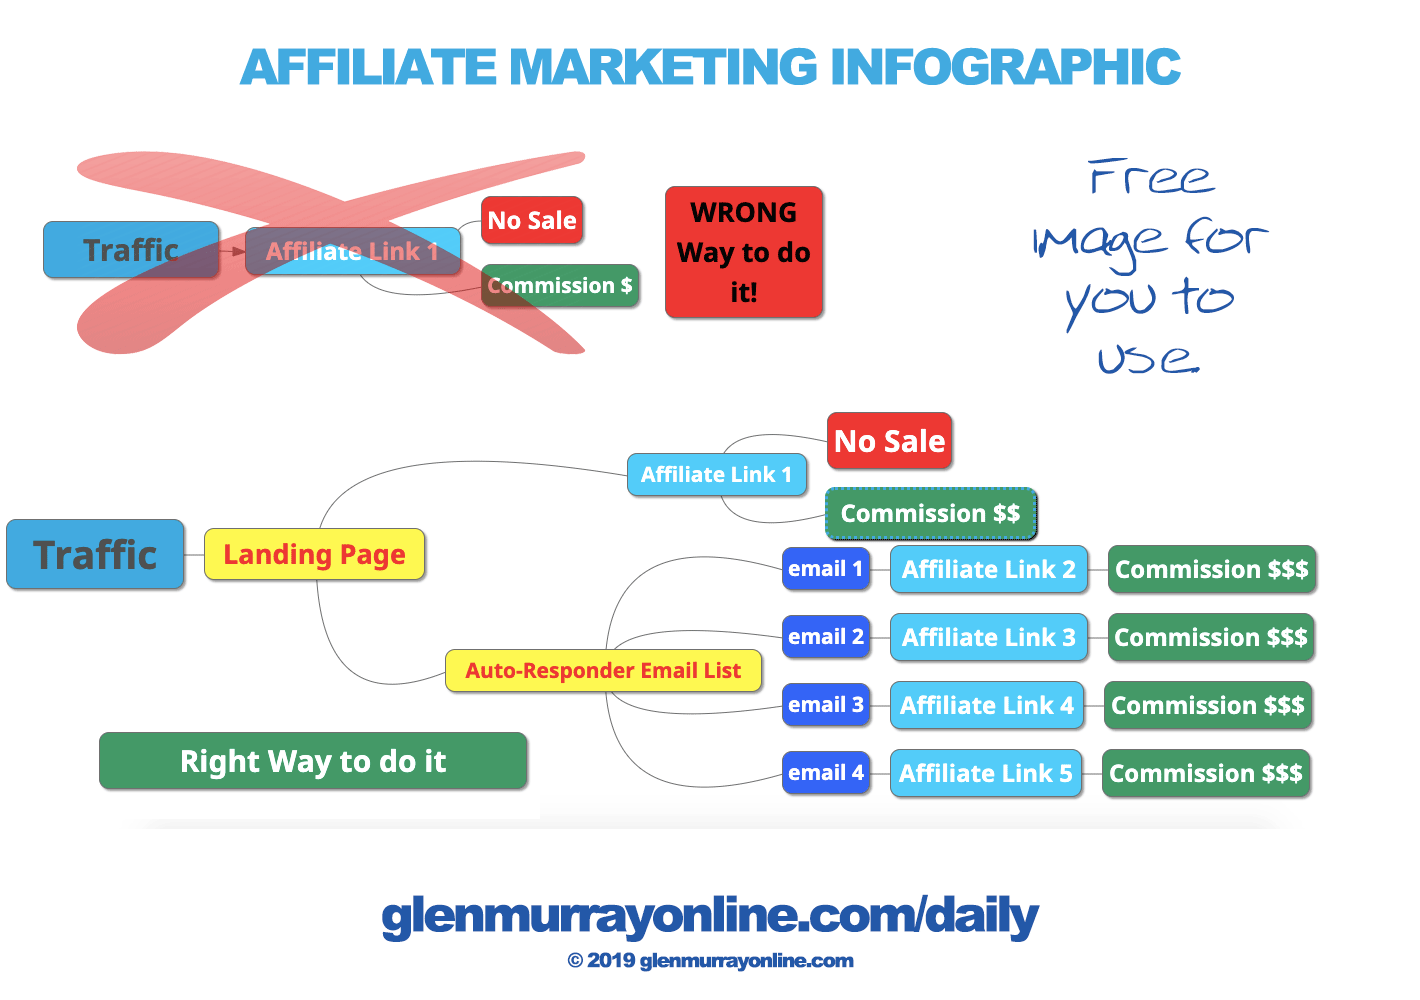 Weekly Video Roundup: How to do Affiliate Marketing (7 Training Videos) 2